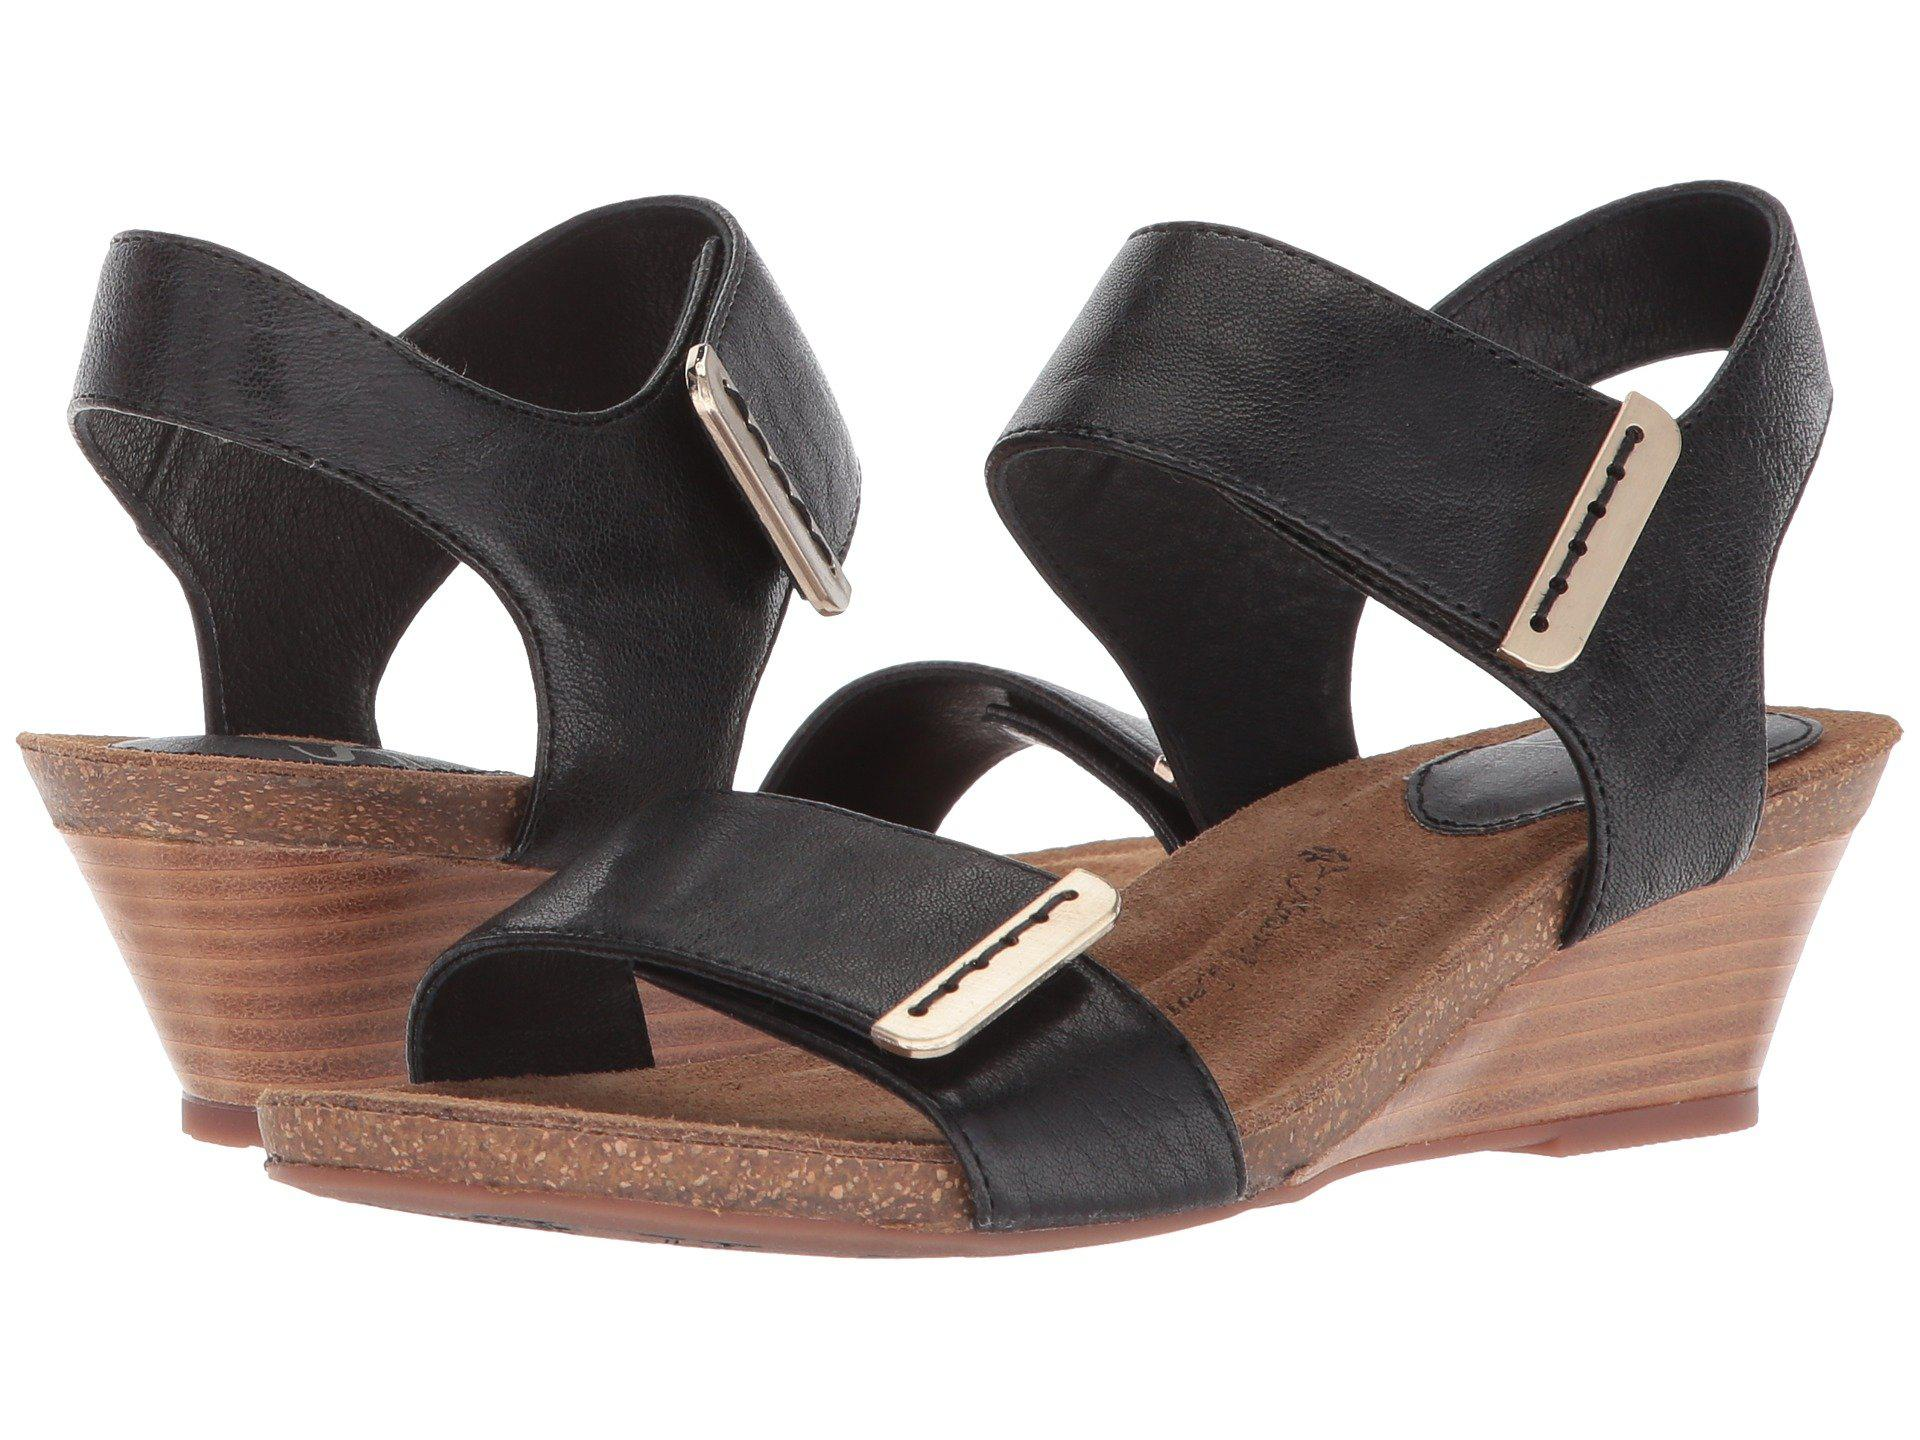 bd5eb8e86fea Lyst - Söfft Verdi (beta Grey Oyster) Women s Wedge Shoes in Black